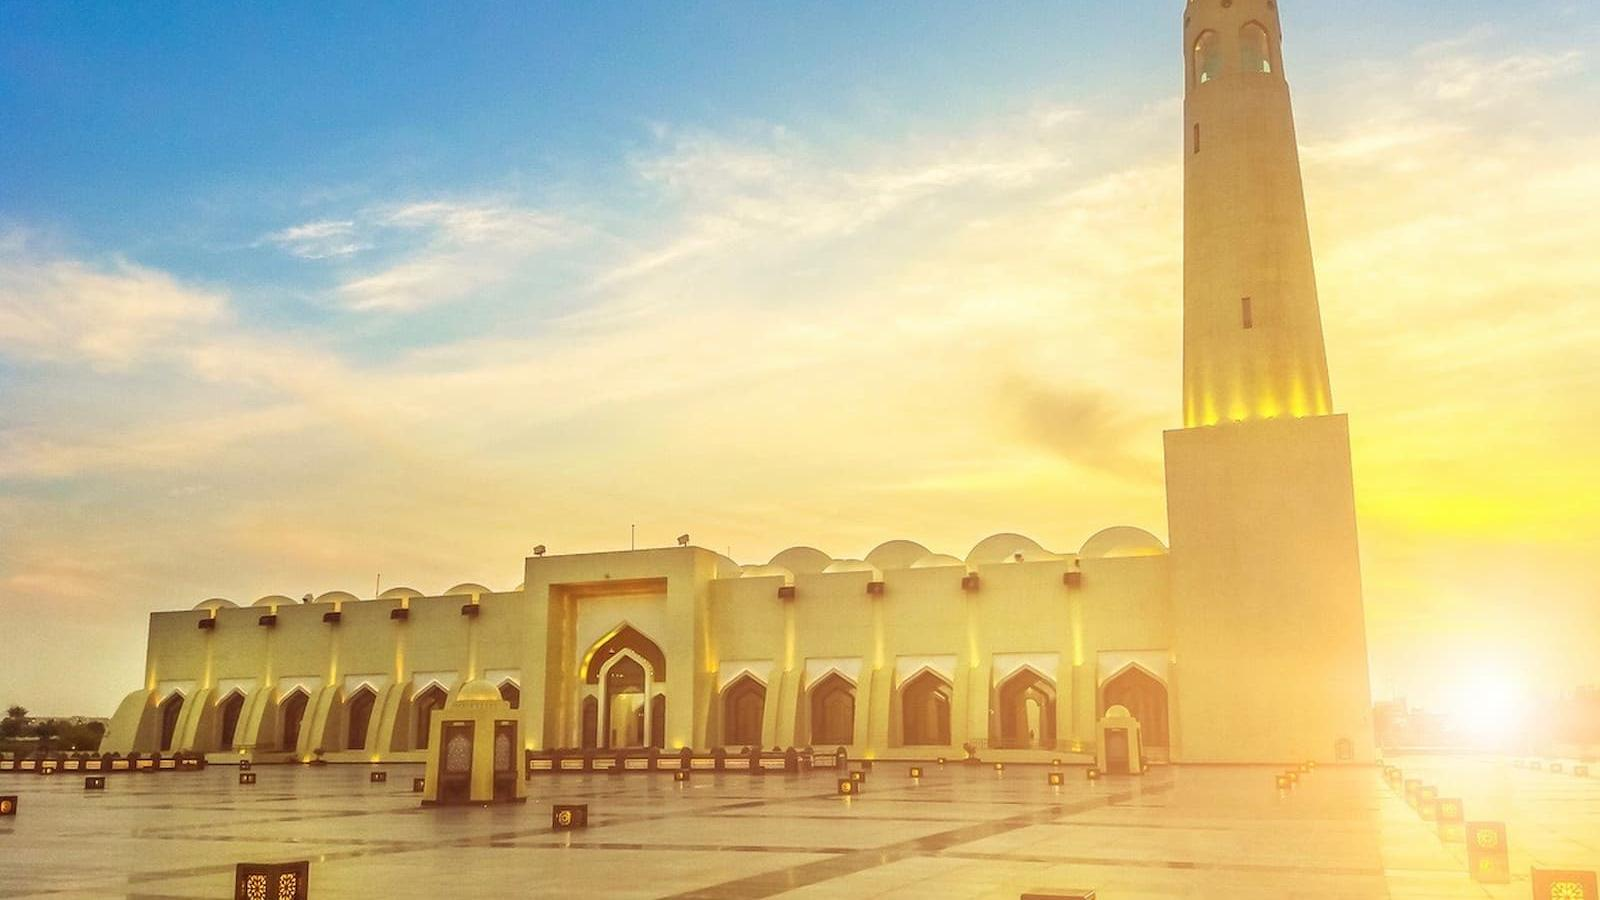 Limited number of mosques to open for prayers from June 15: Awqaf